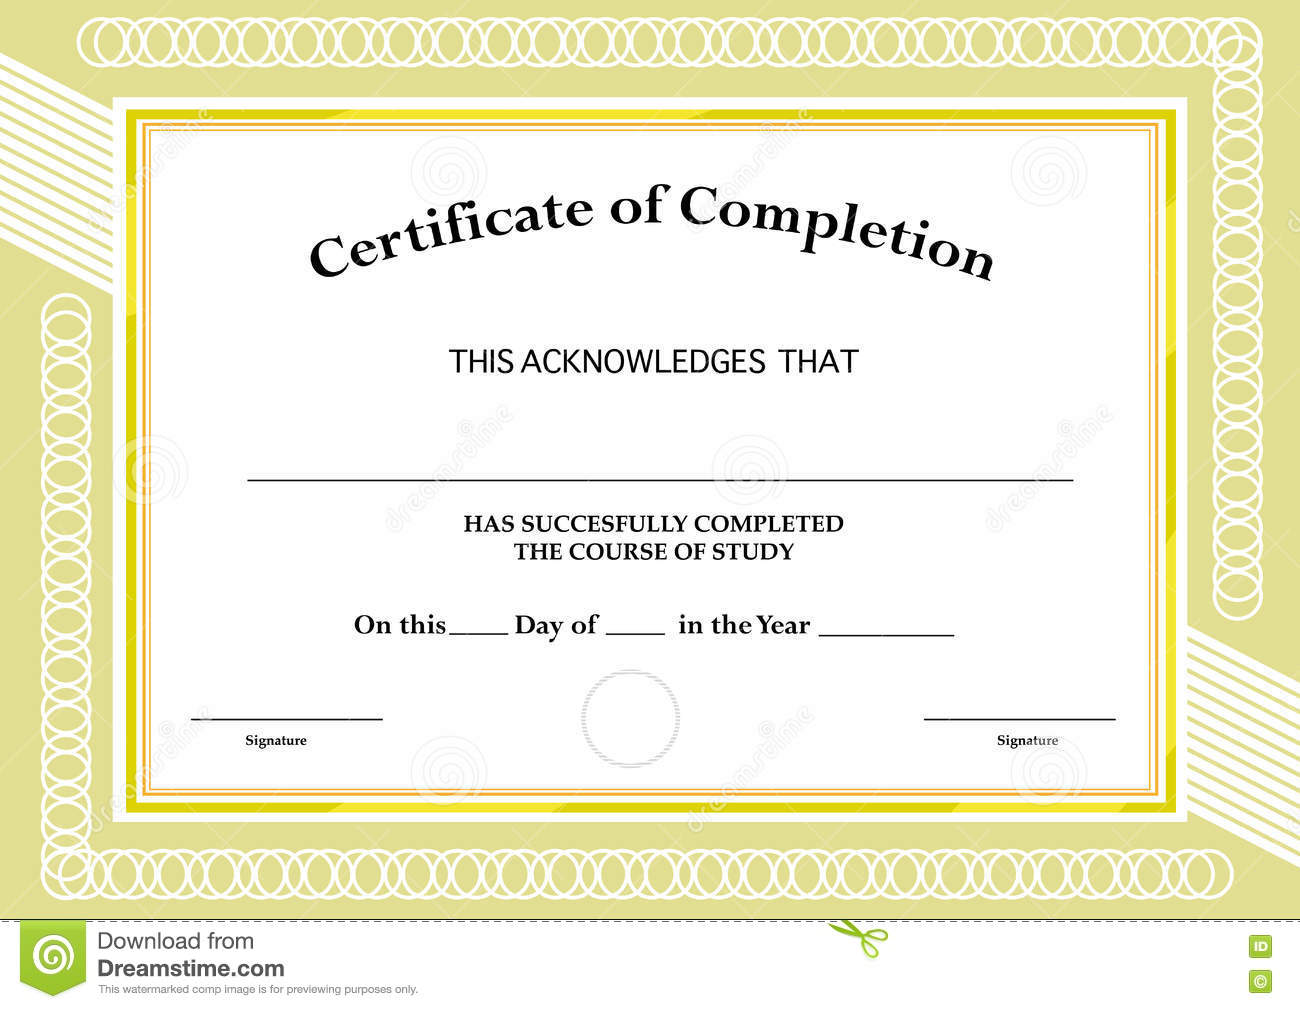 Certificate Of Completion. Classic Frame And Visual Design. Editable.